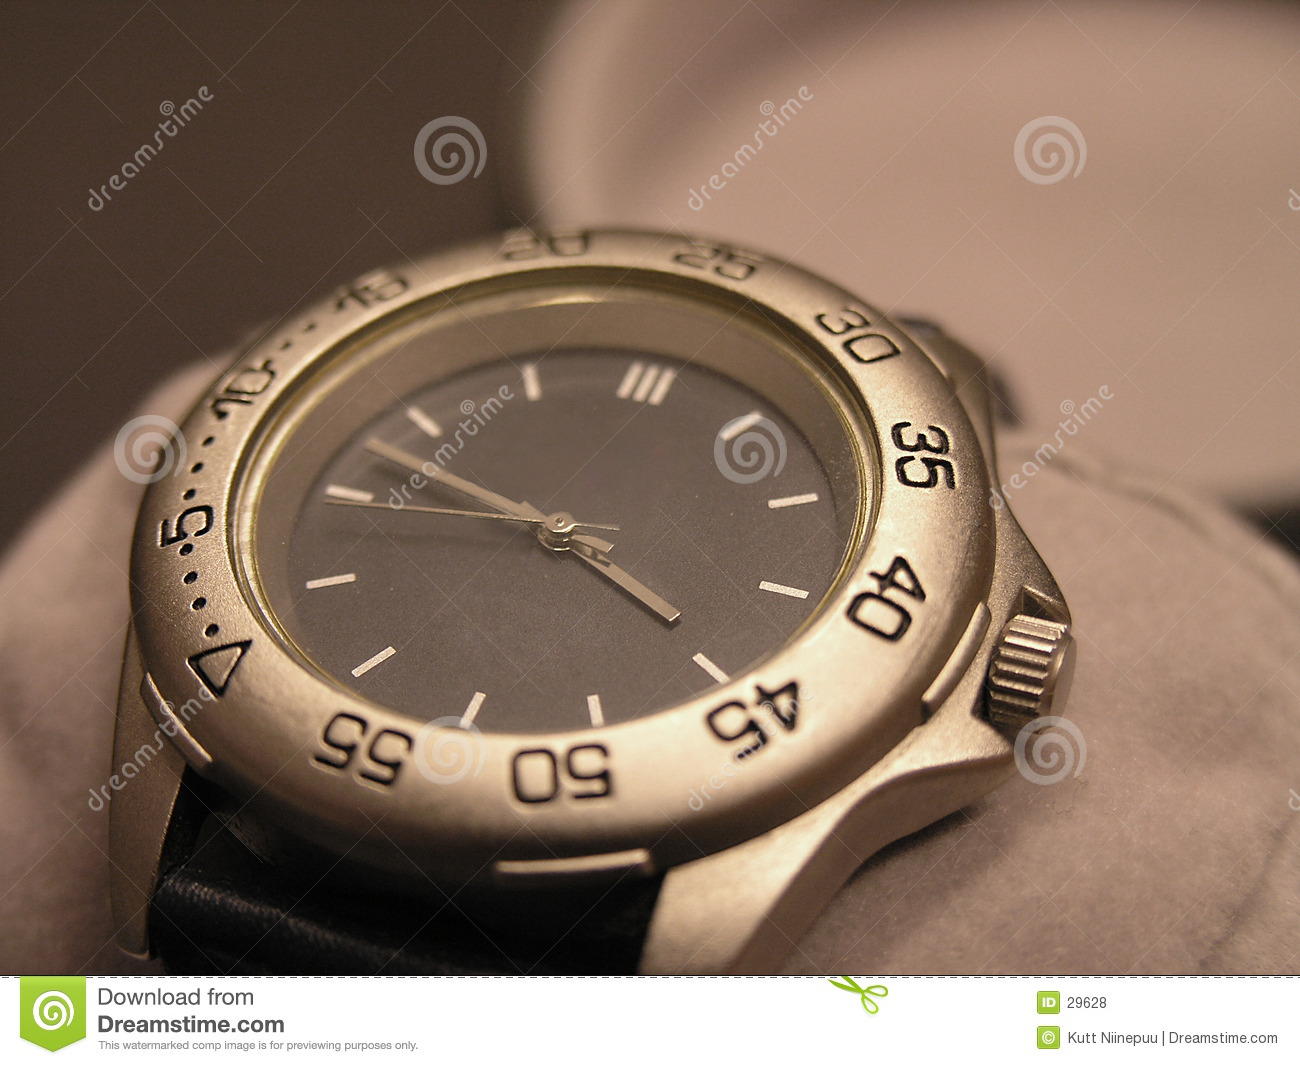 Fake watch